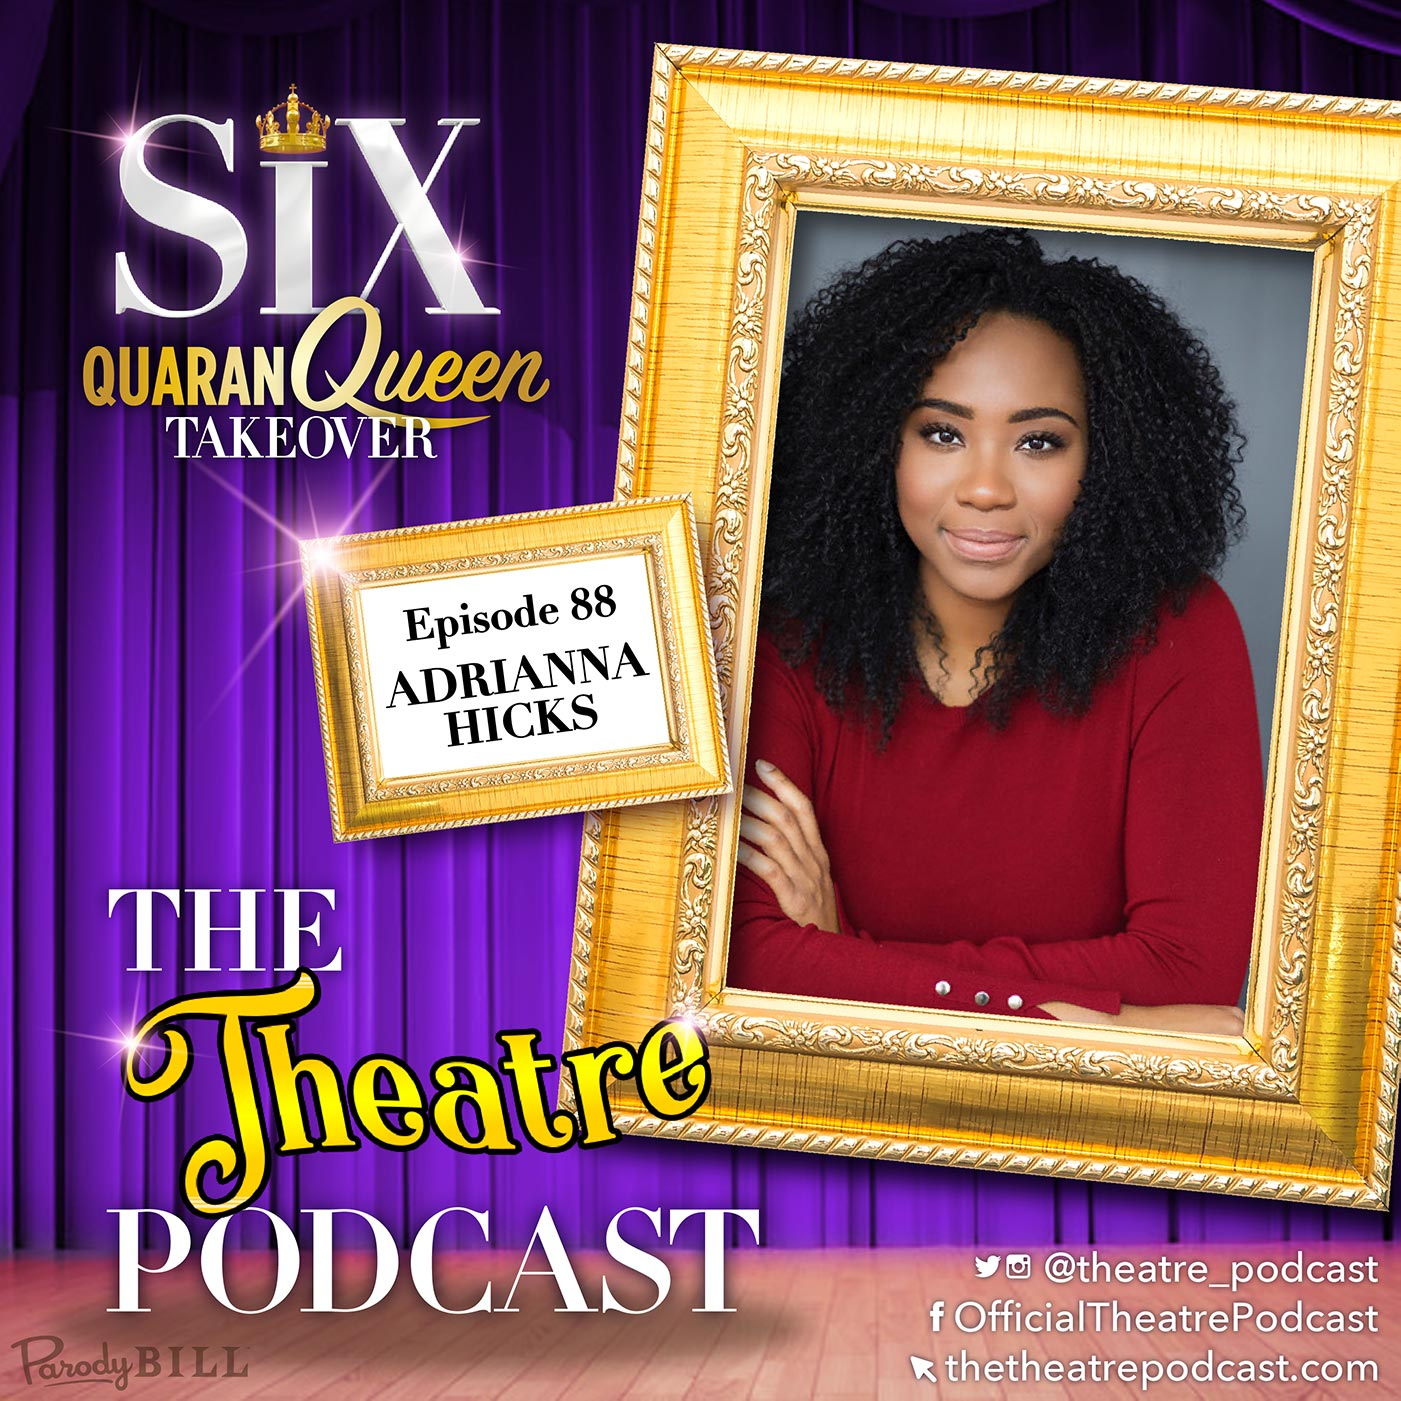 The Theatre Podcast - Ep88 - Adrianna Hicks, Catherine of Aragon in SIX the Musical (Broadway cast)